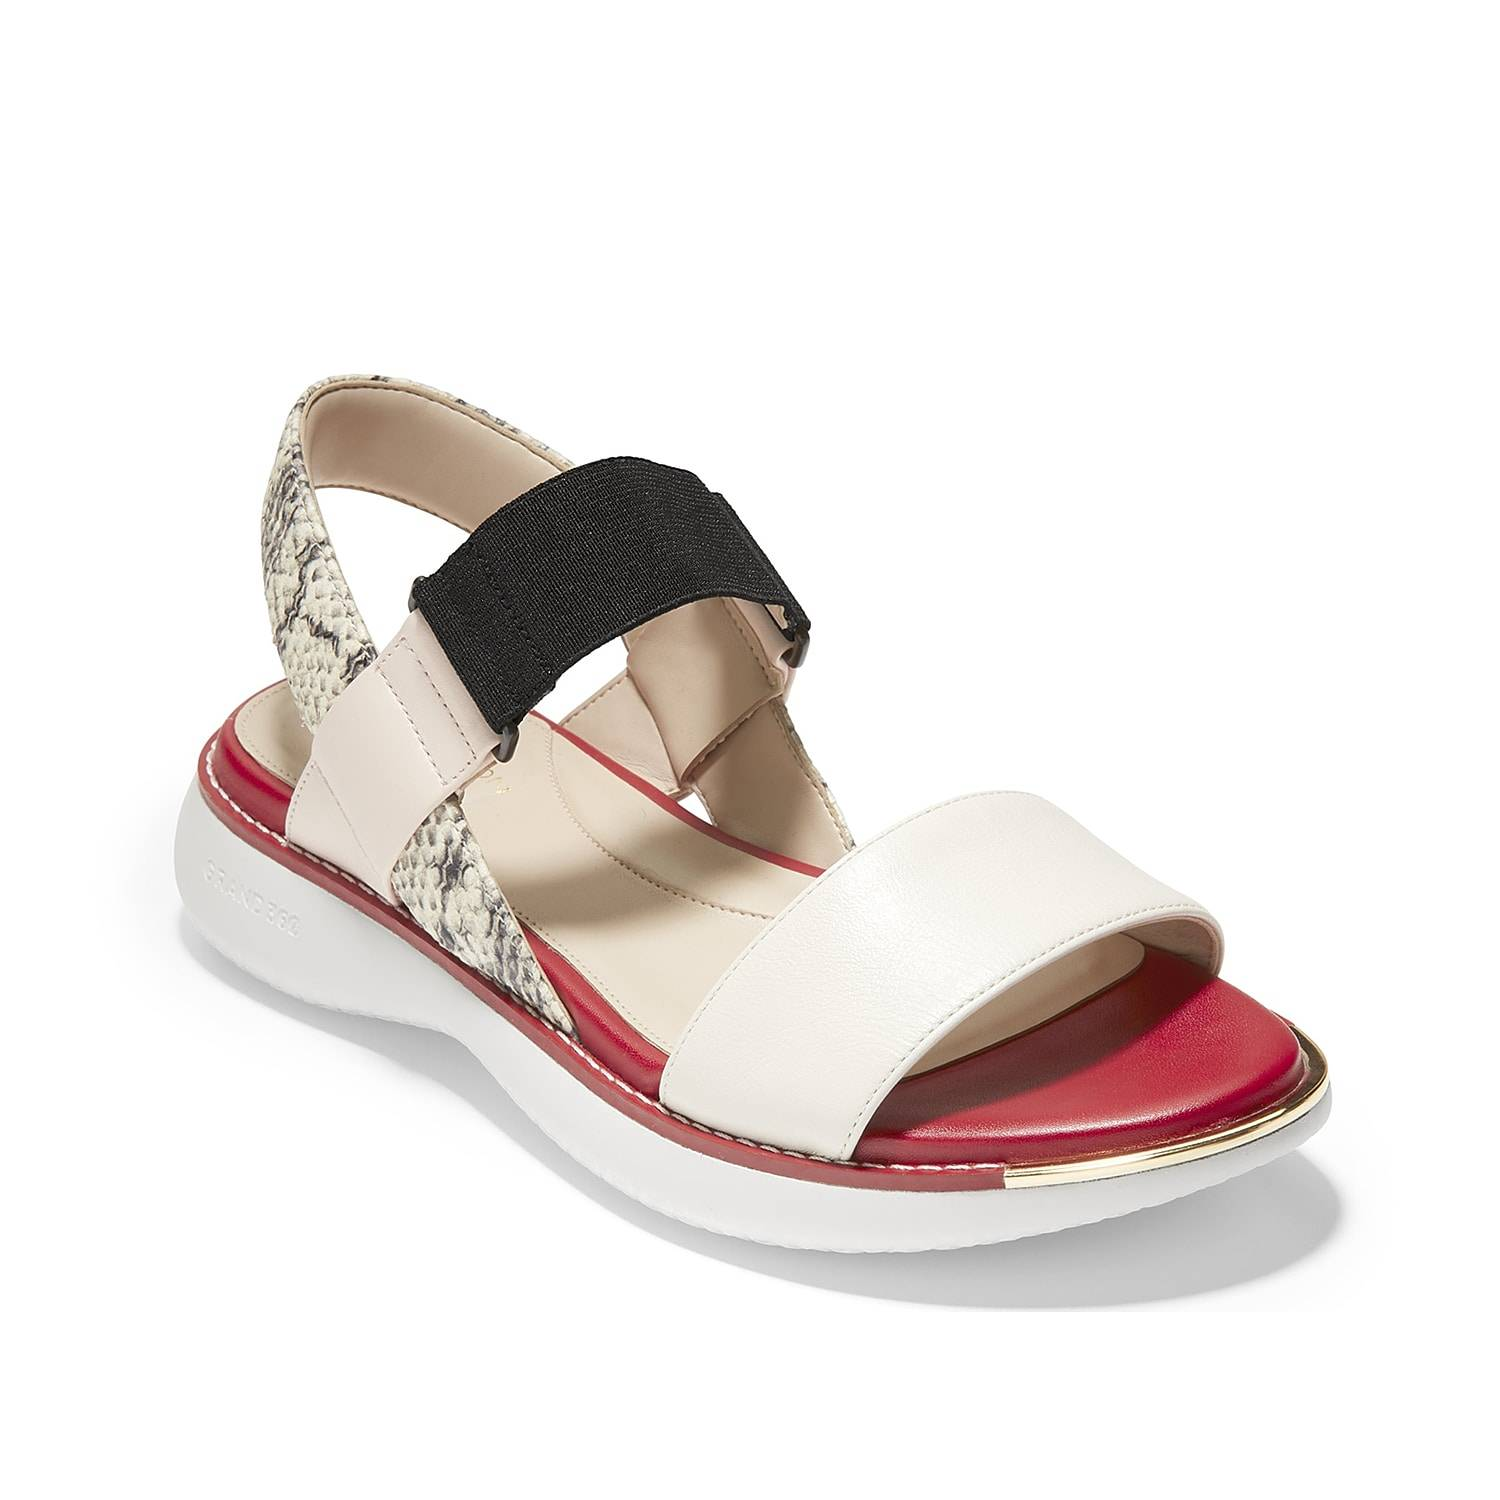 Cole Haan Grand Ambition Sandal   Women's   Off White   Size 10   Sandals   Slingback